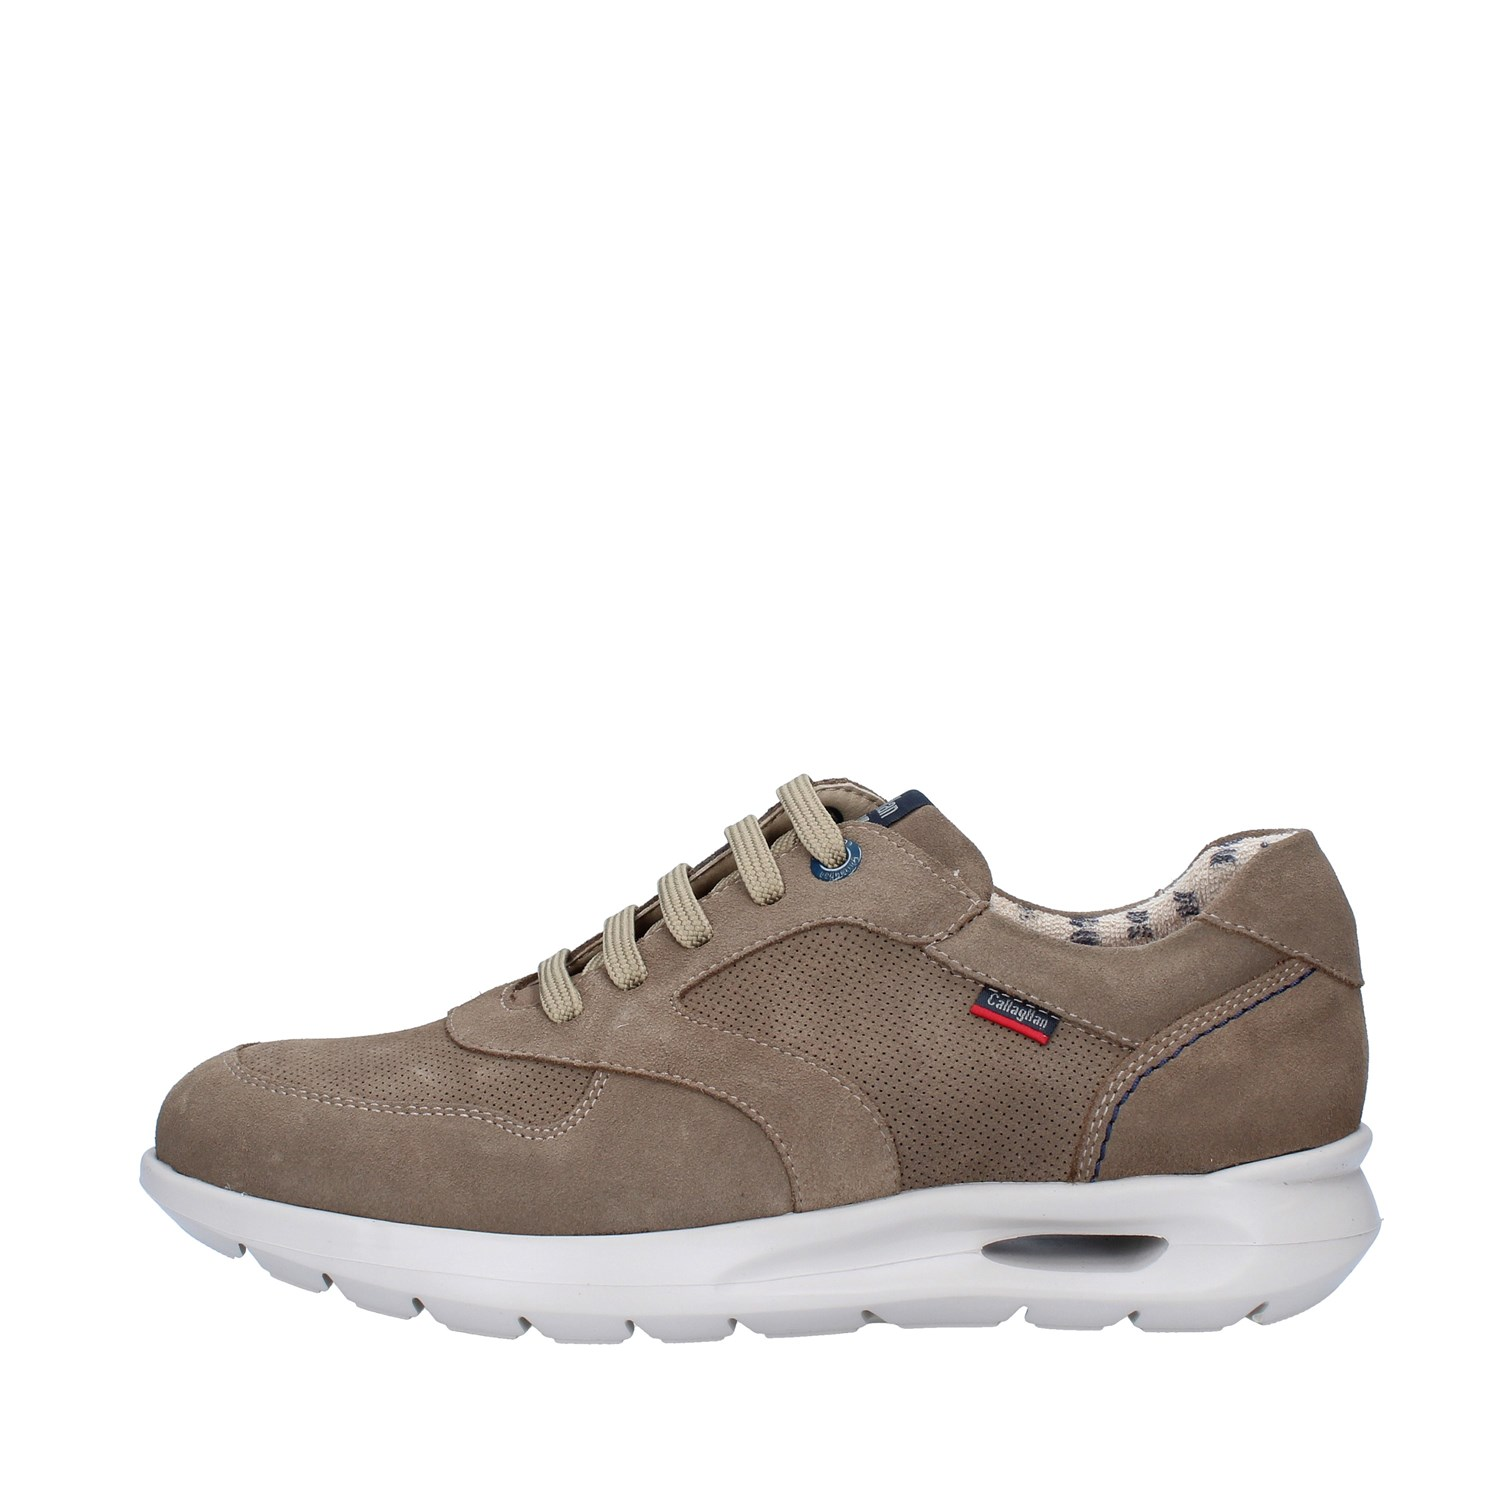 Callaghan Shoes Man low BEIGE 42600